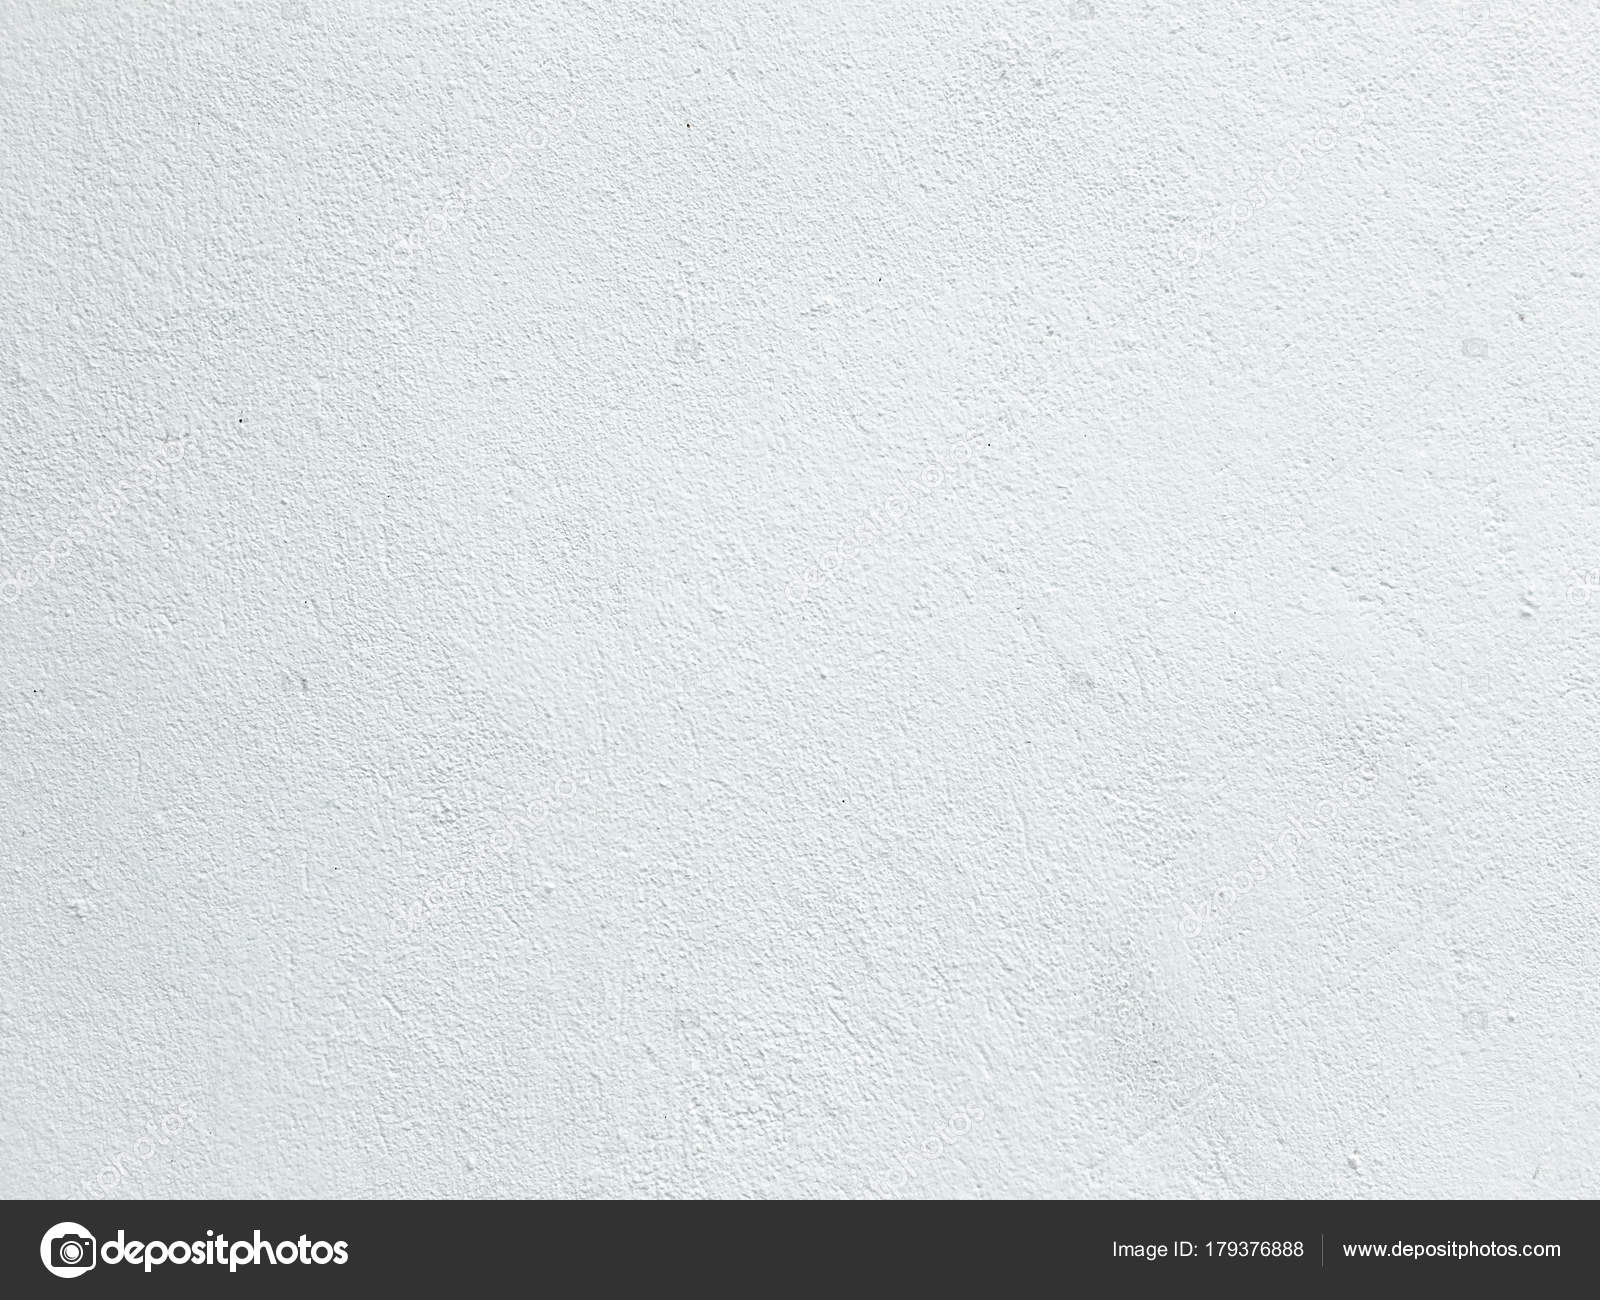 Grungy White Painted Wall Texture As Background Cracked Concrete Vintage Old